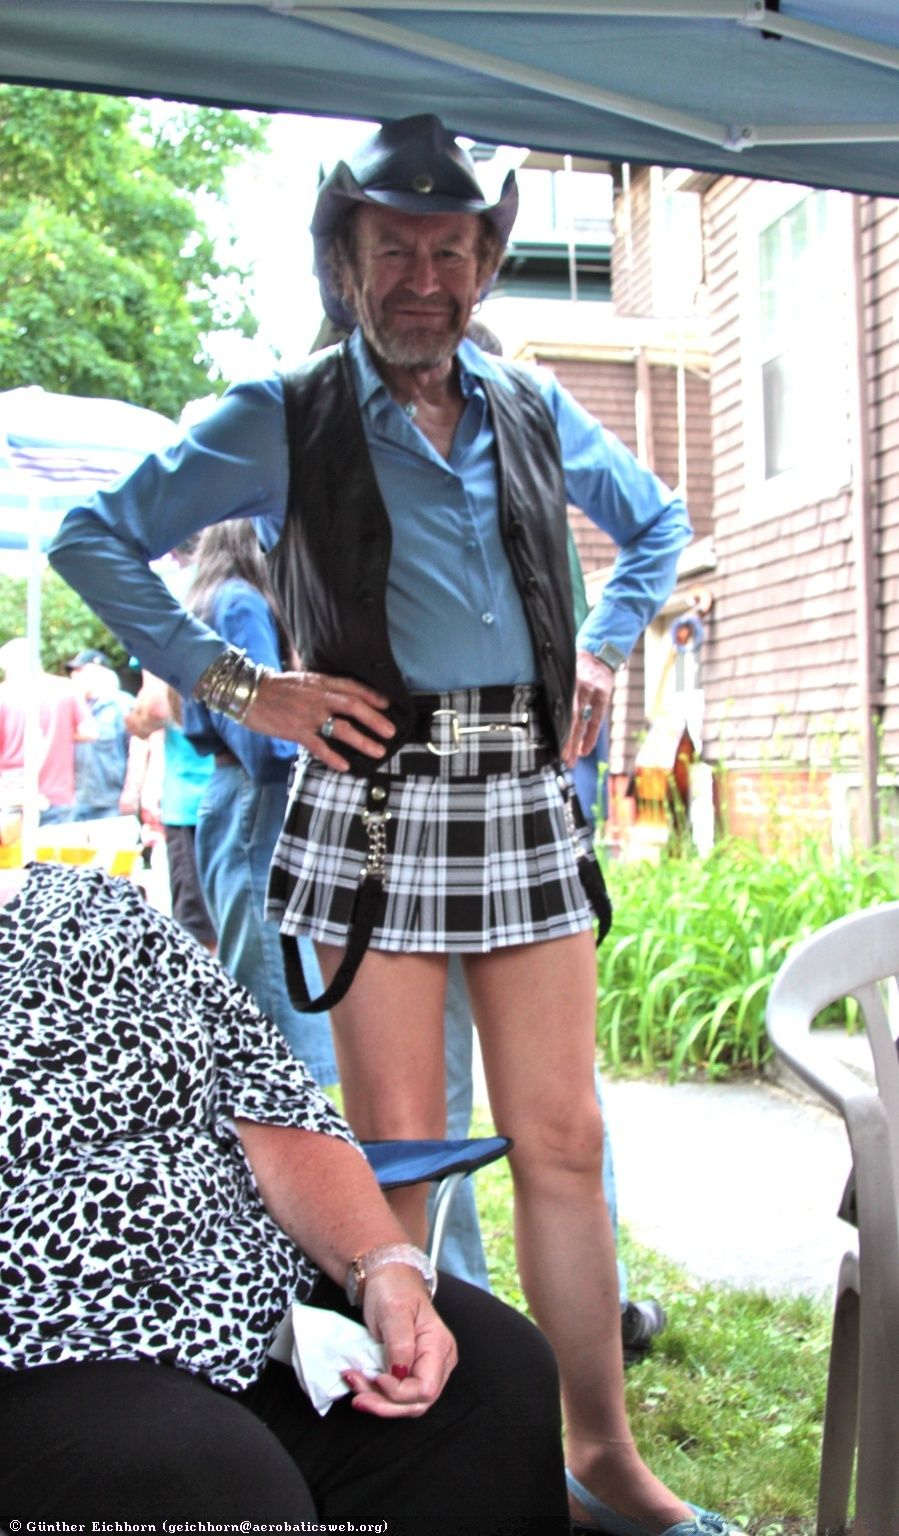 Pin By George Hodges On Funny People Men Wearing Skirts Men Wearing Dresses Boys Wearing Skirts